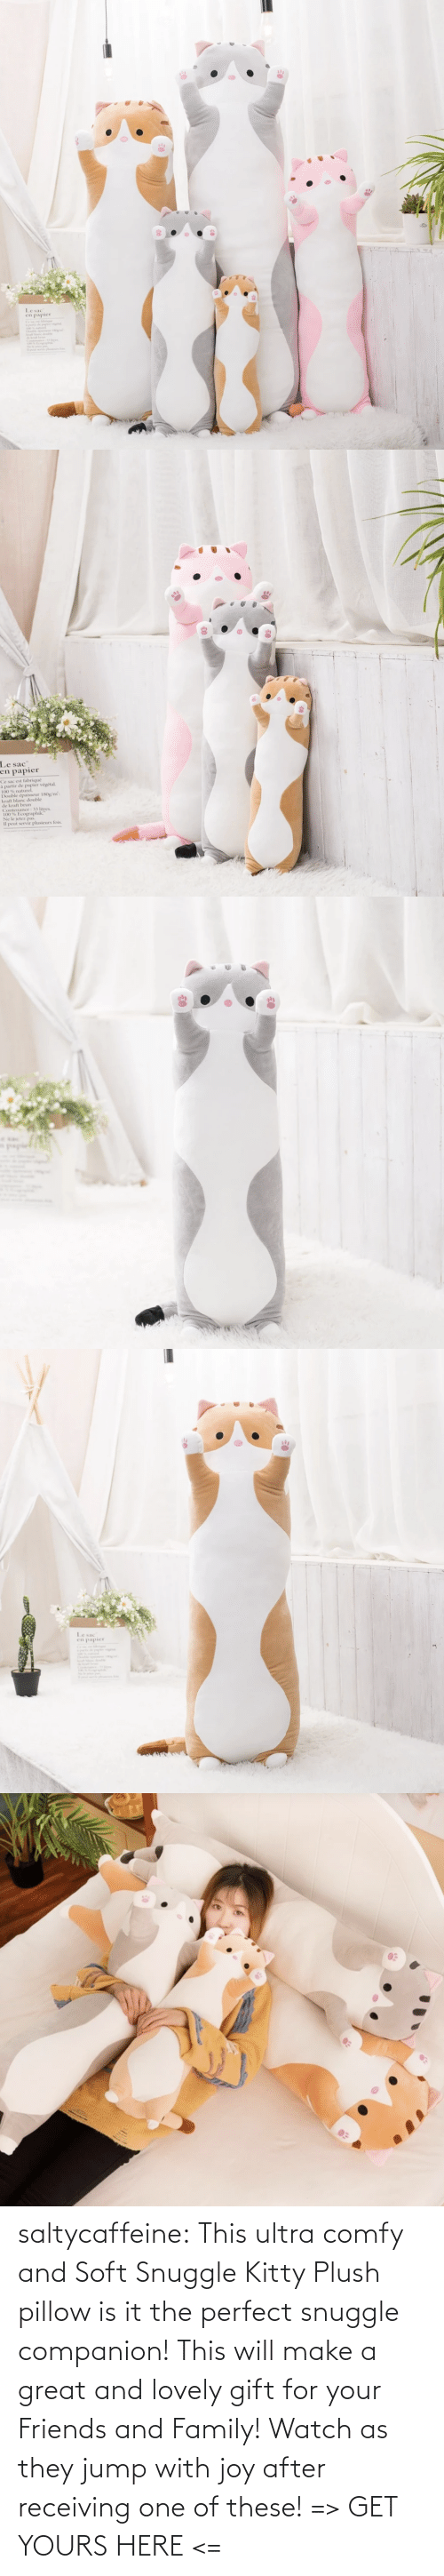 pillow: saltycaffeine: This ultra comfy and Soft Snuggle Kitty Plush pillow is it the perfect snuggle companion! This will make a great and lovely gift for your Friends and Family! Watch as they jump with joy after receiving one of these! => GET YOURS HERE <=